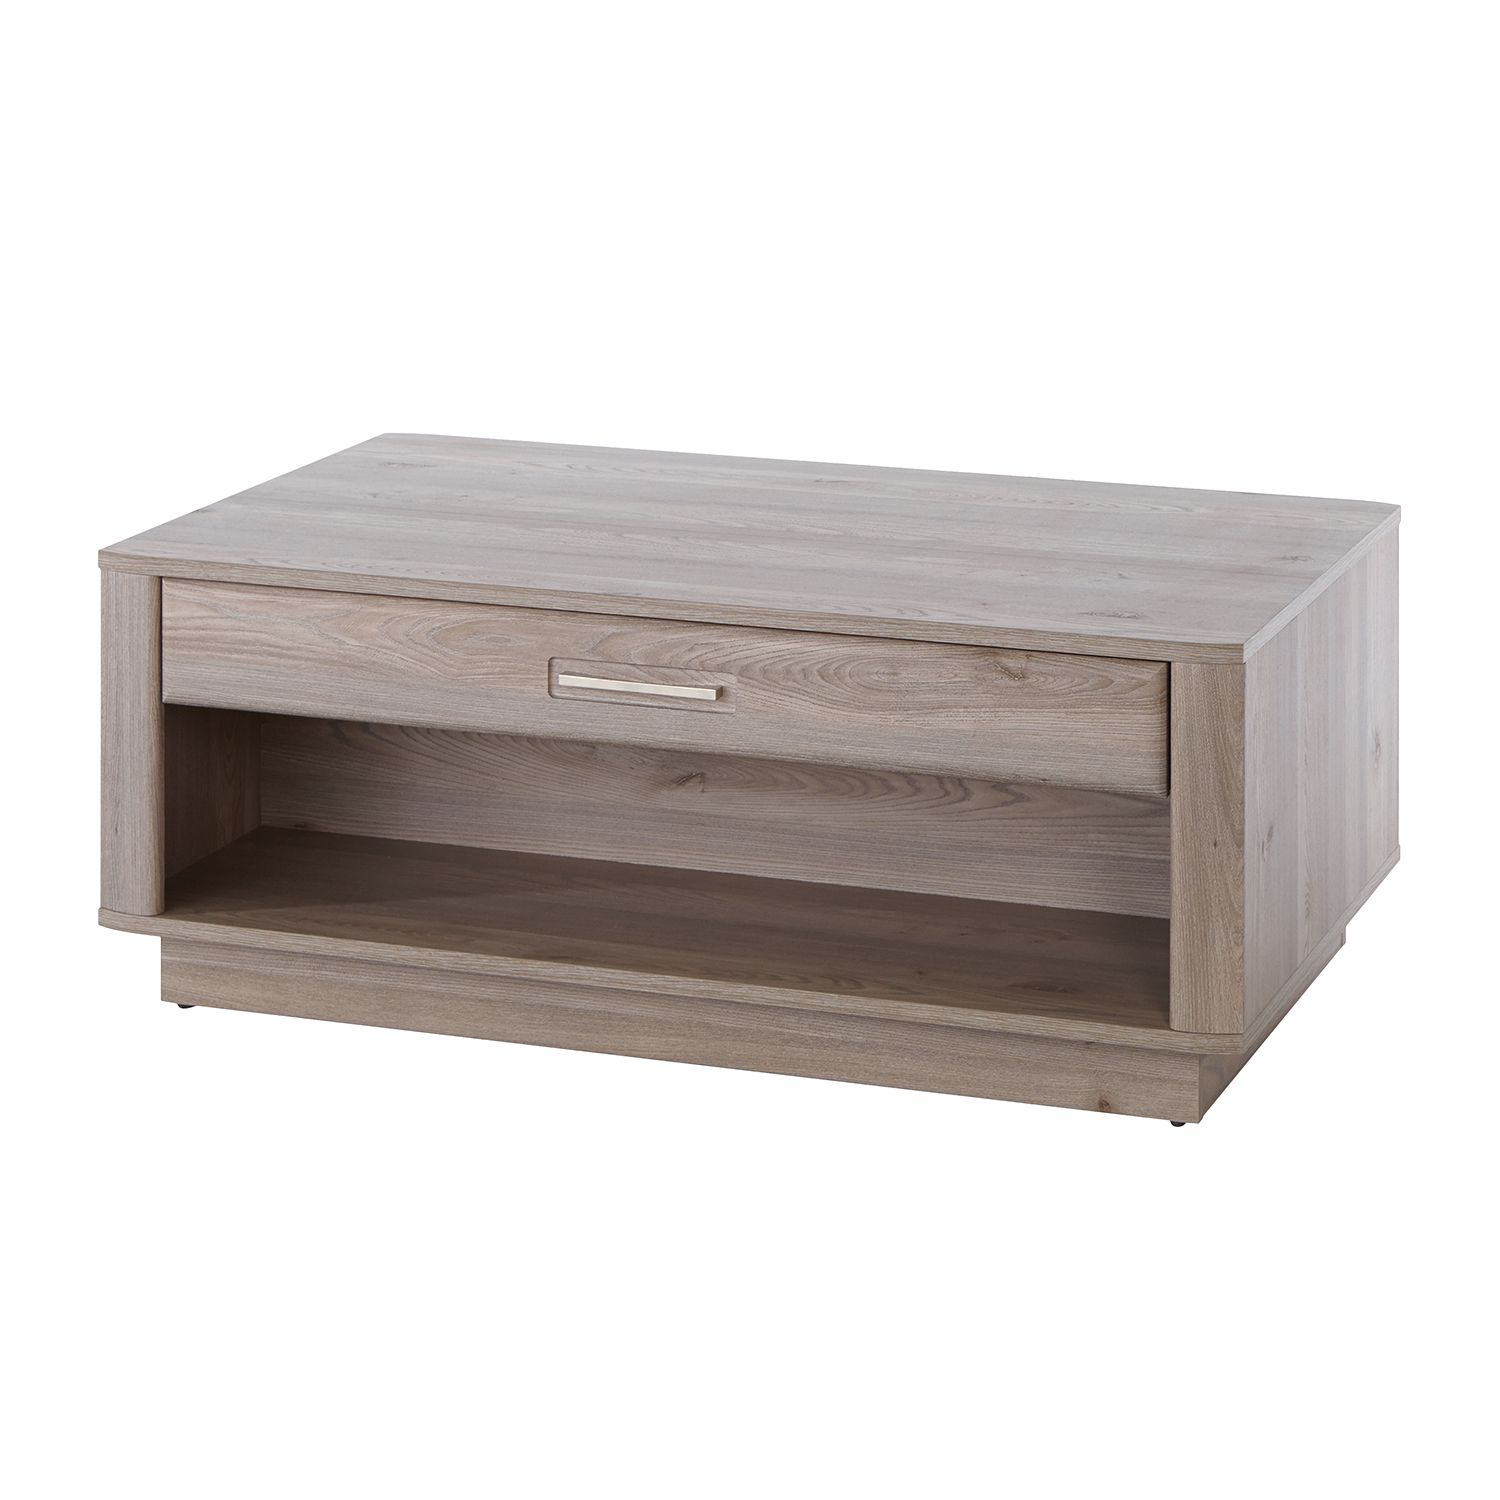 Table basse Adansa